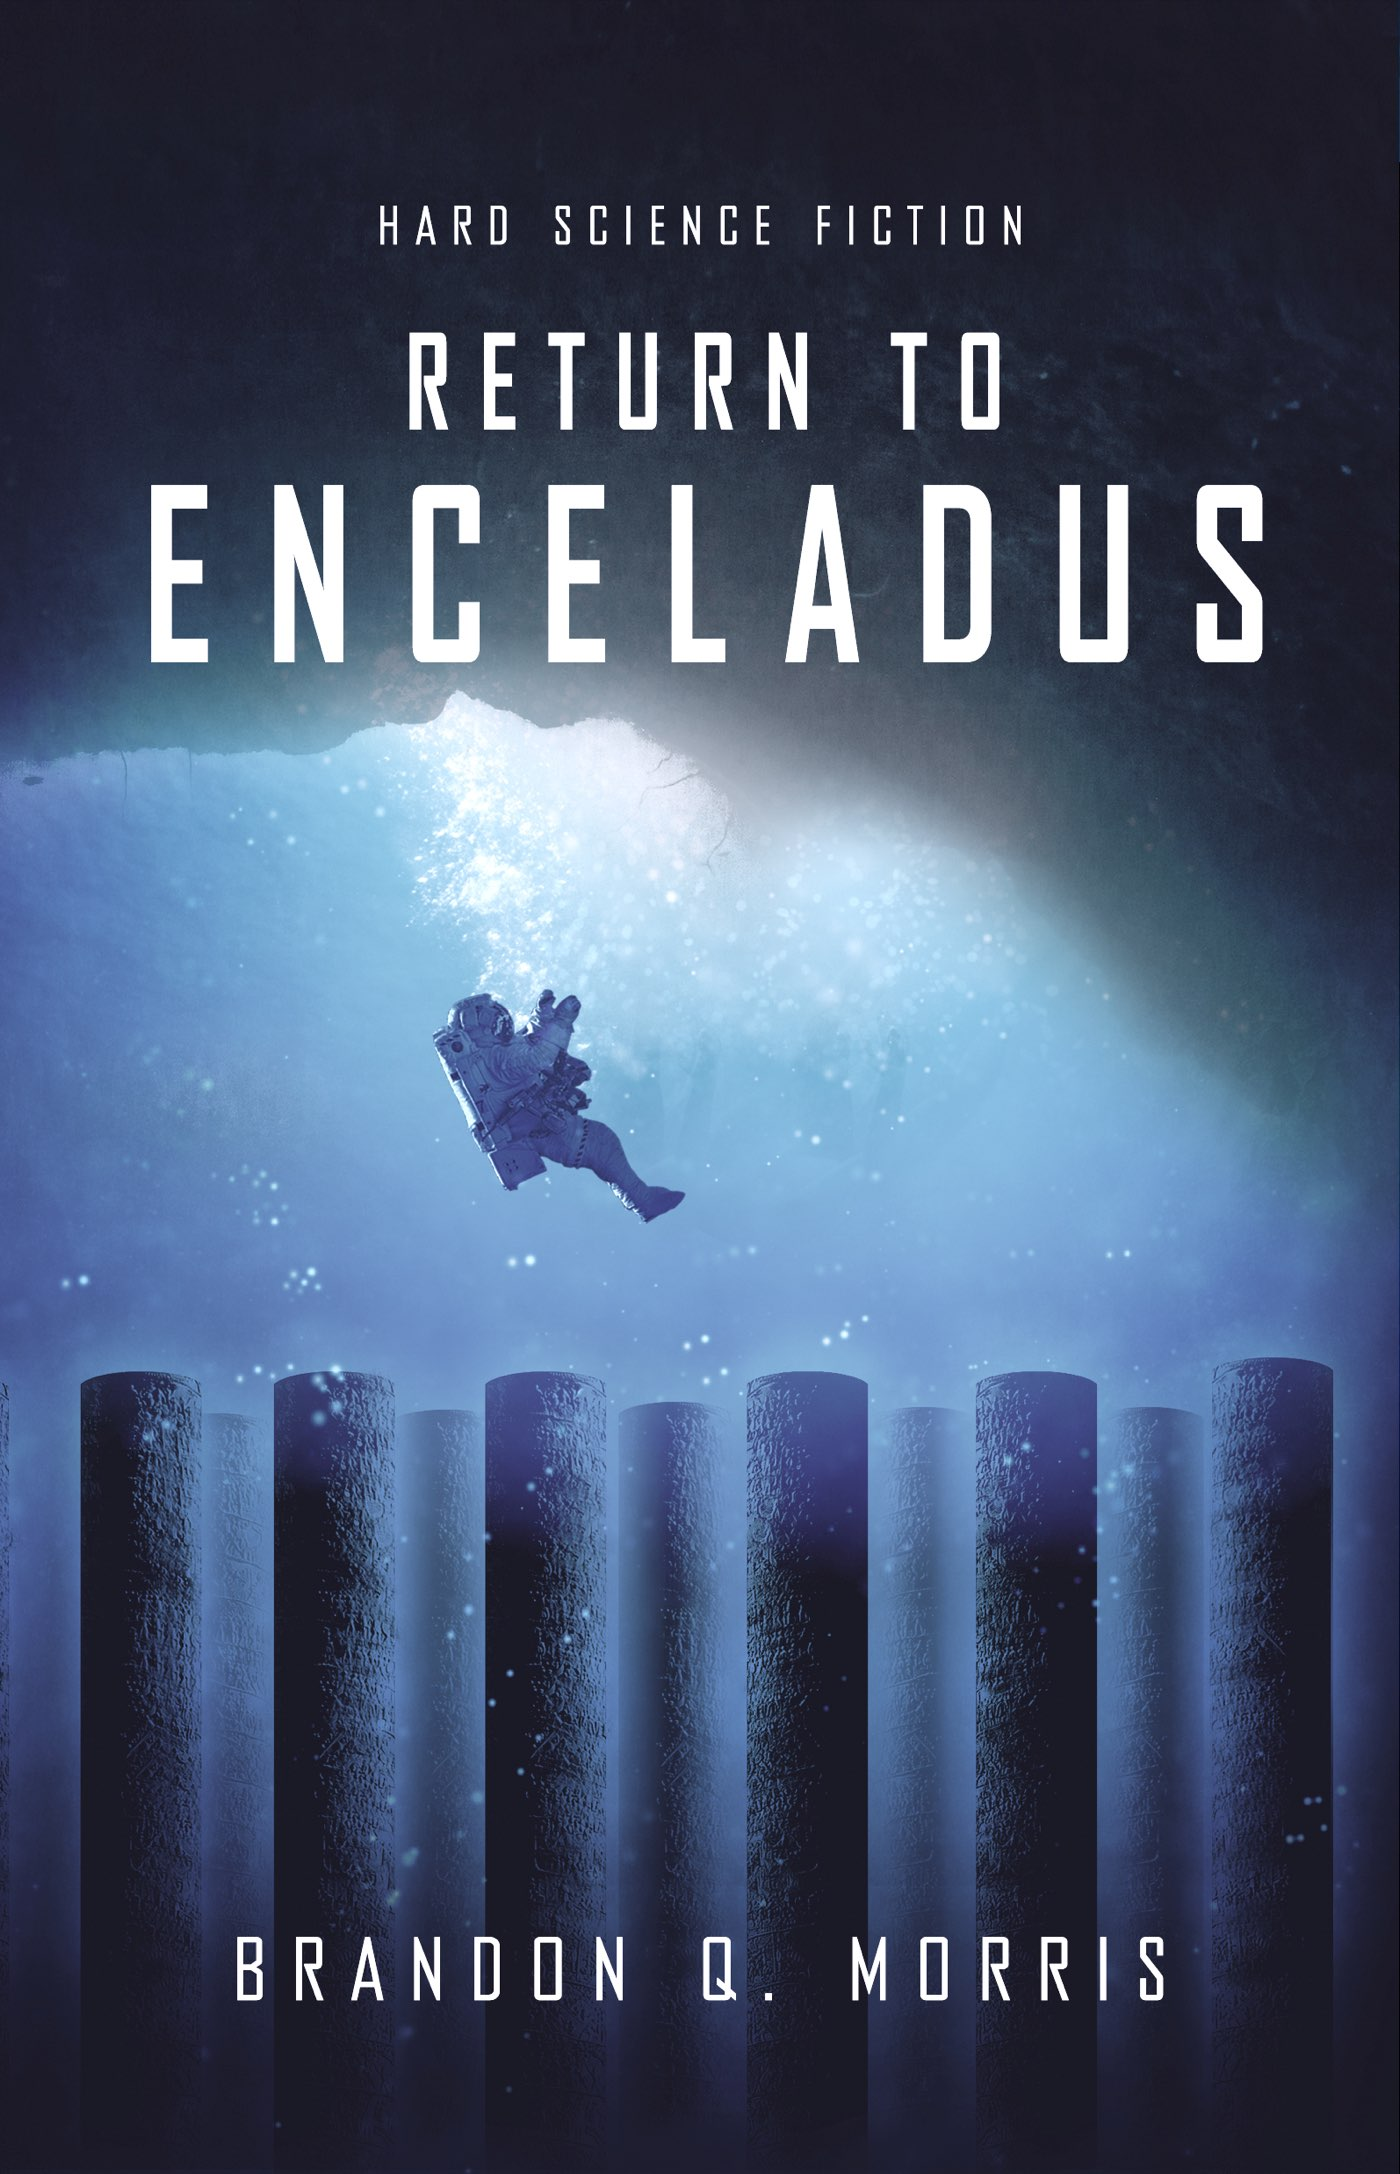 Return to Enceladus